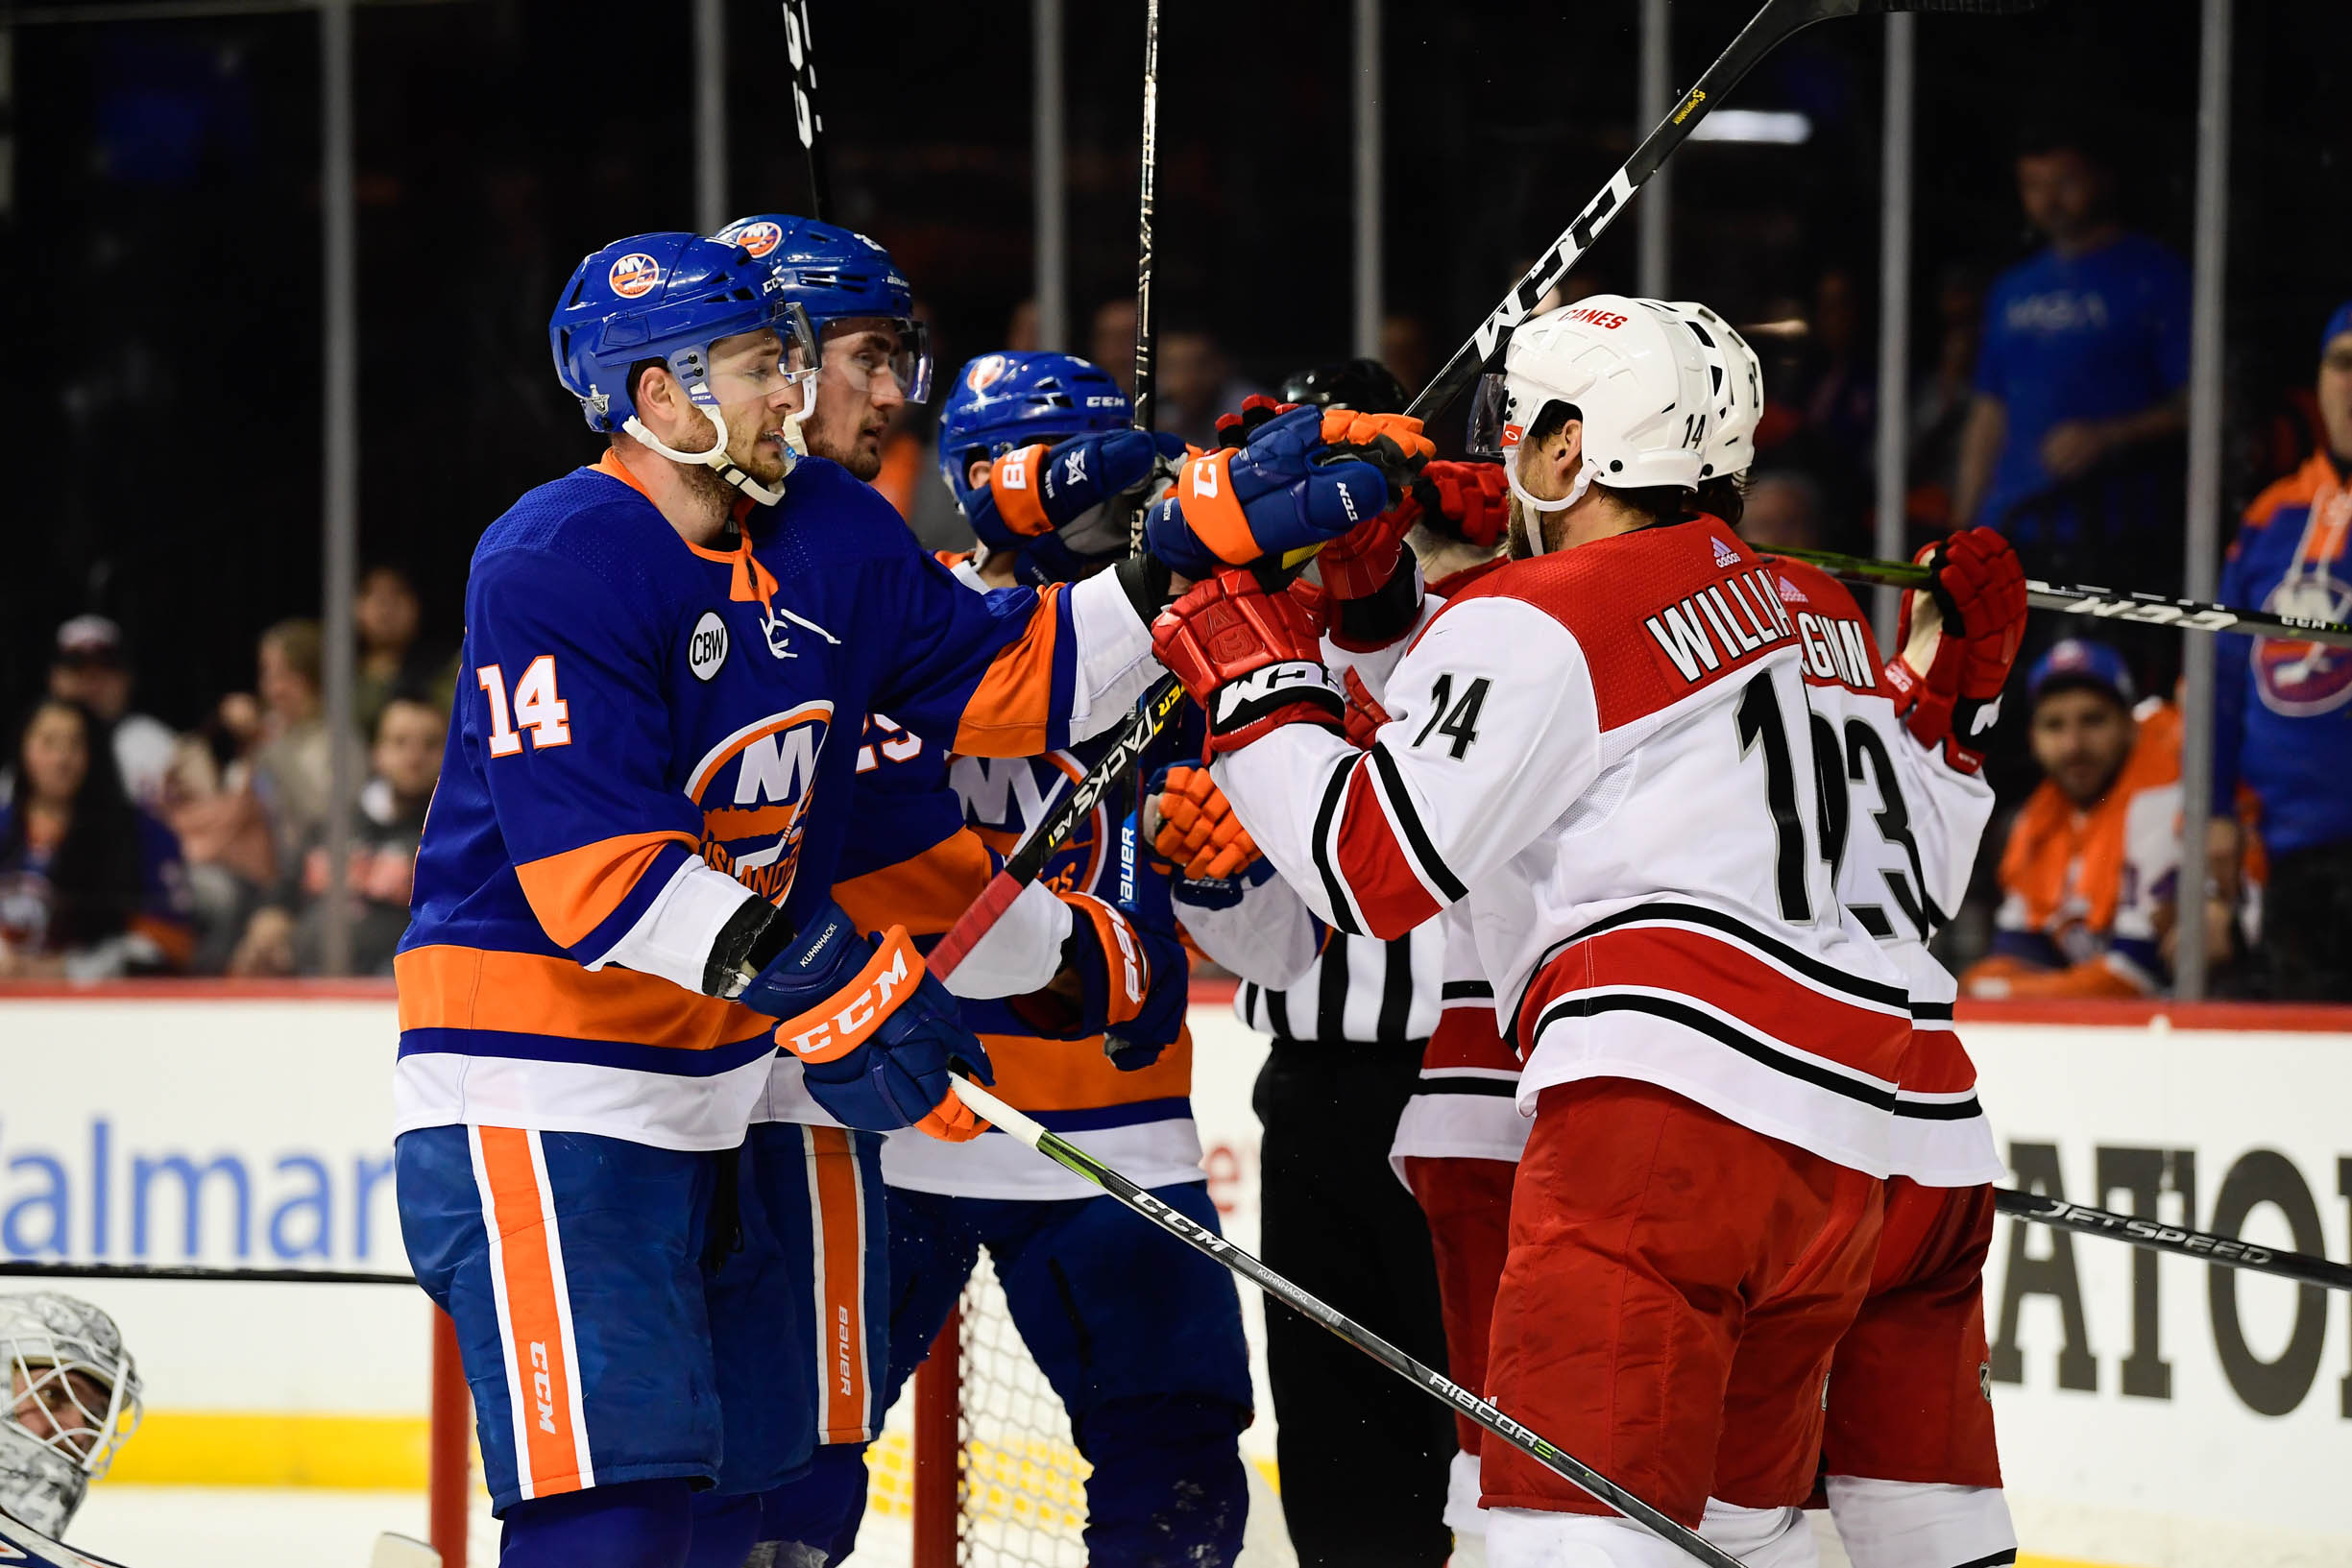 Apr 26, 2019; Brooklyn, NY, USA; New York Islanders right wing Tom Kuhnhackl (14) and Carolina Hurricanes right wing Justin Williams (14) scuffle during the first period in game one of the second round of the 2019 Stanley Cup Playoffs at Barclays Center. Mandatory Credit: Catalina Fragoso-USA TODAY Sports